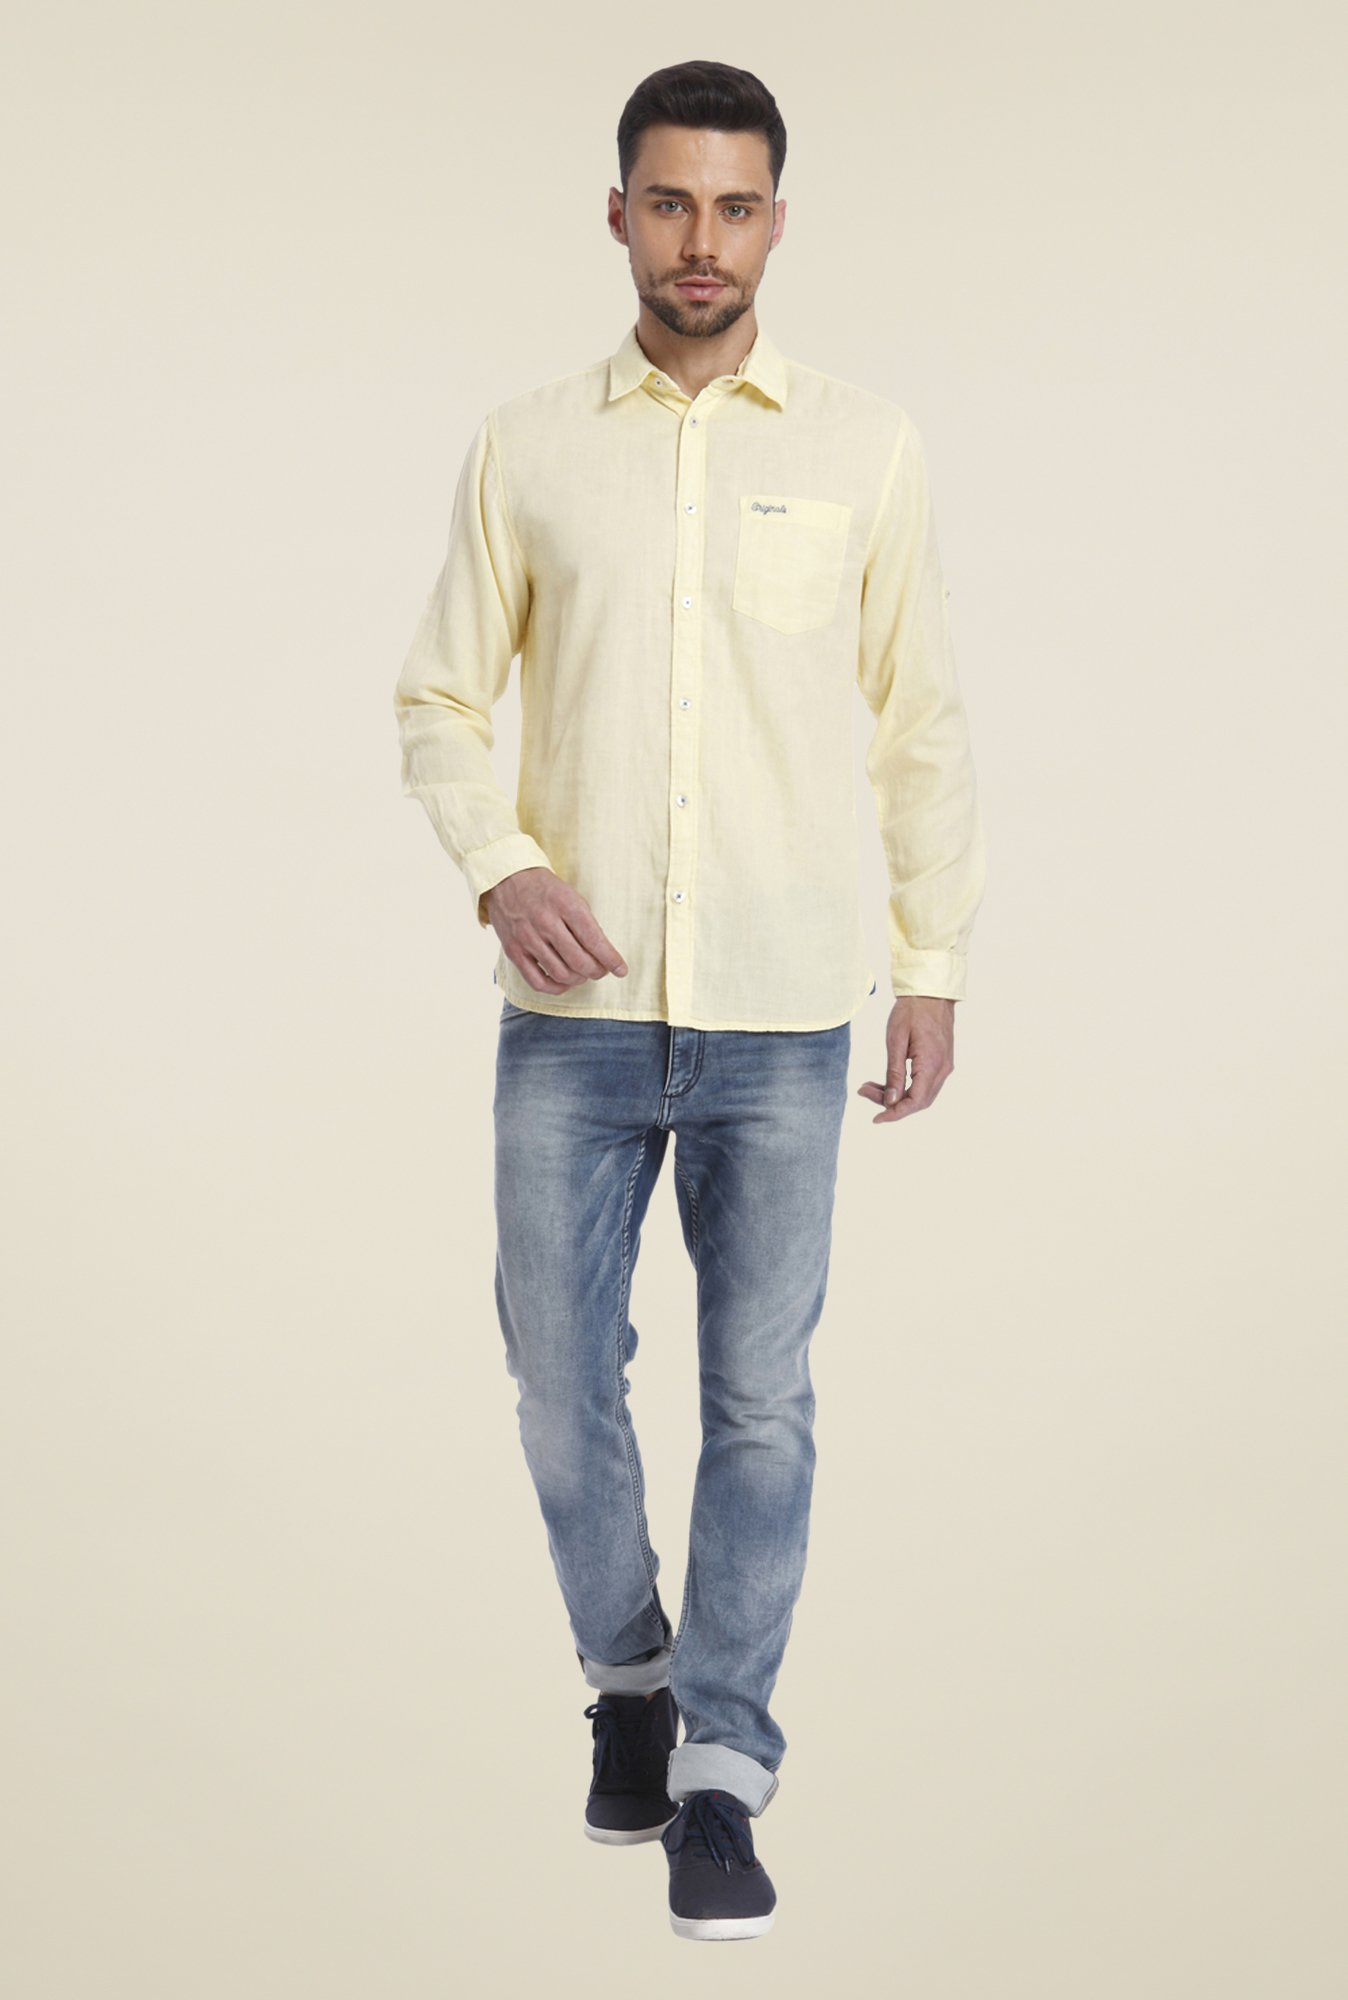 Jack & Jones Yellow Solid Shirt